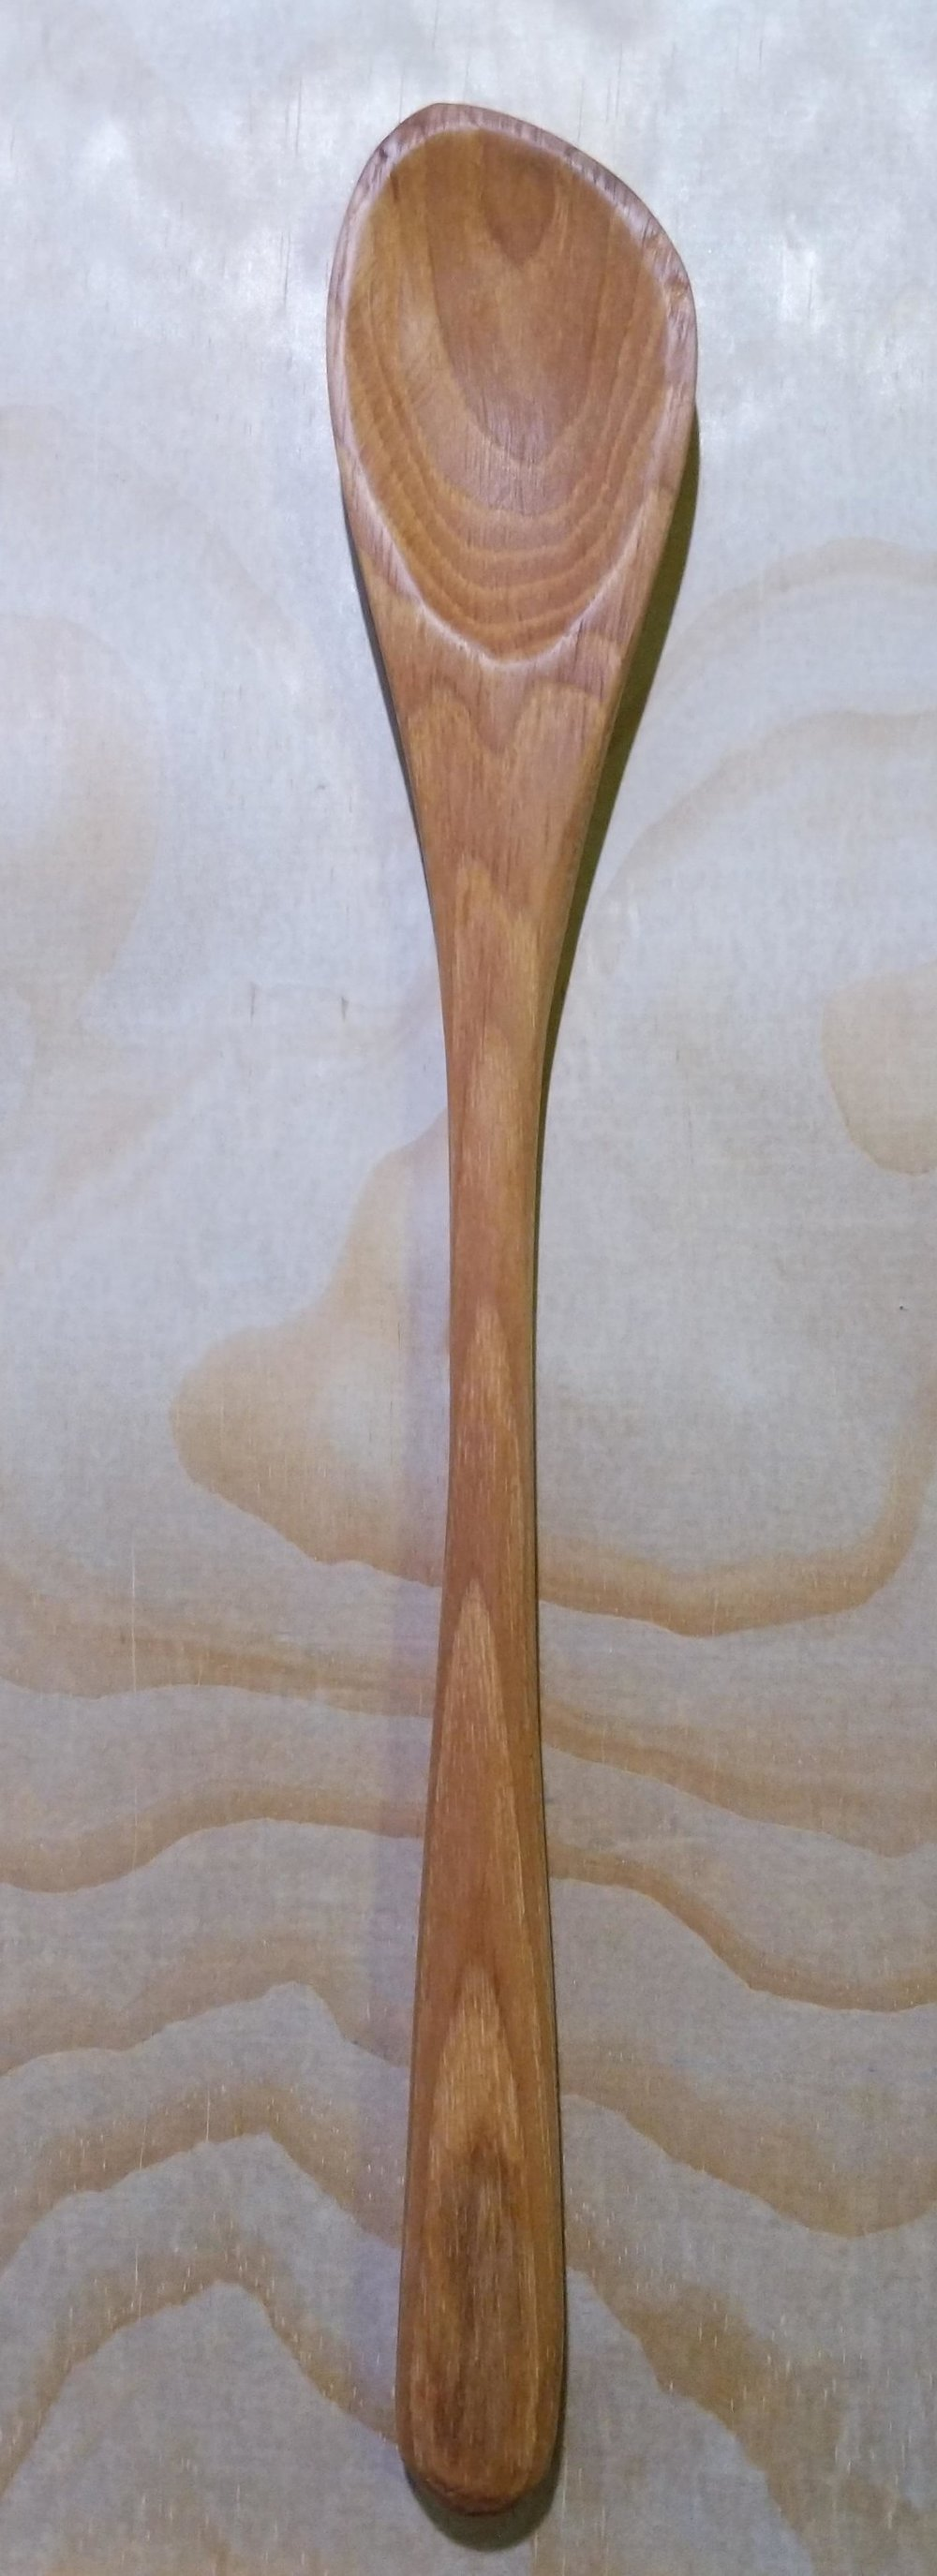 """Curved spoon, hickory, left handed, 12.5"""" long"""